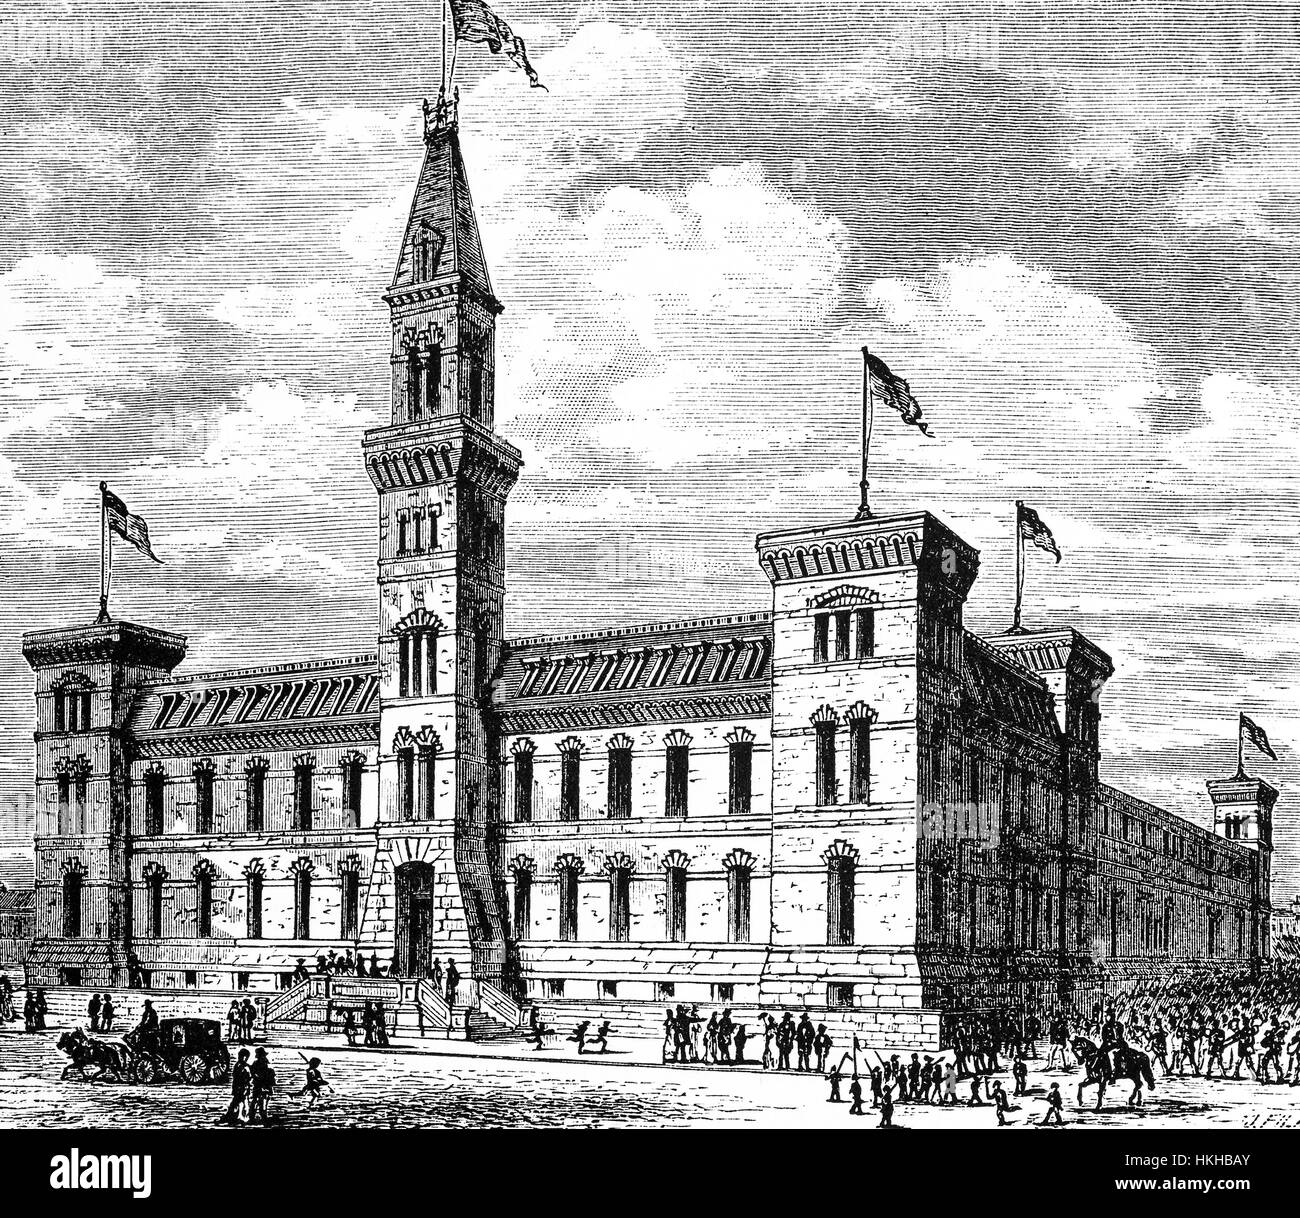 1879: The Seventh Regiment Armory, also known as Park Avenue Armory, is a historic brick building that fills an - Stock Image